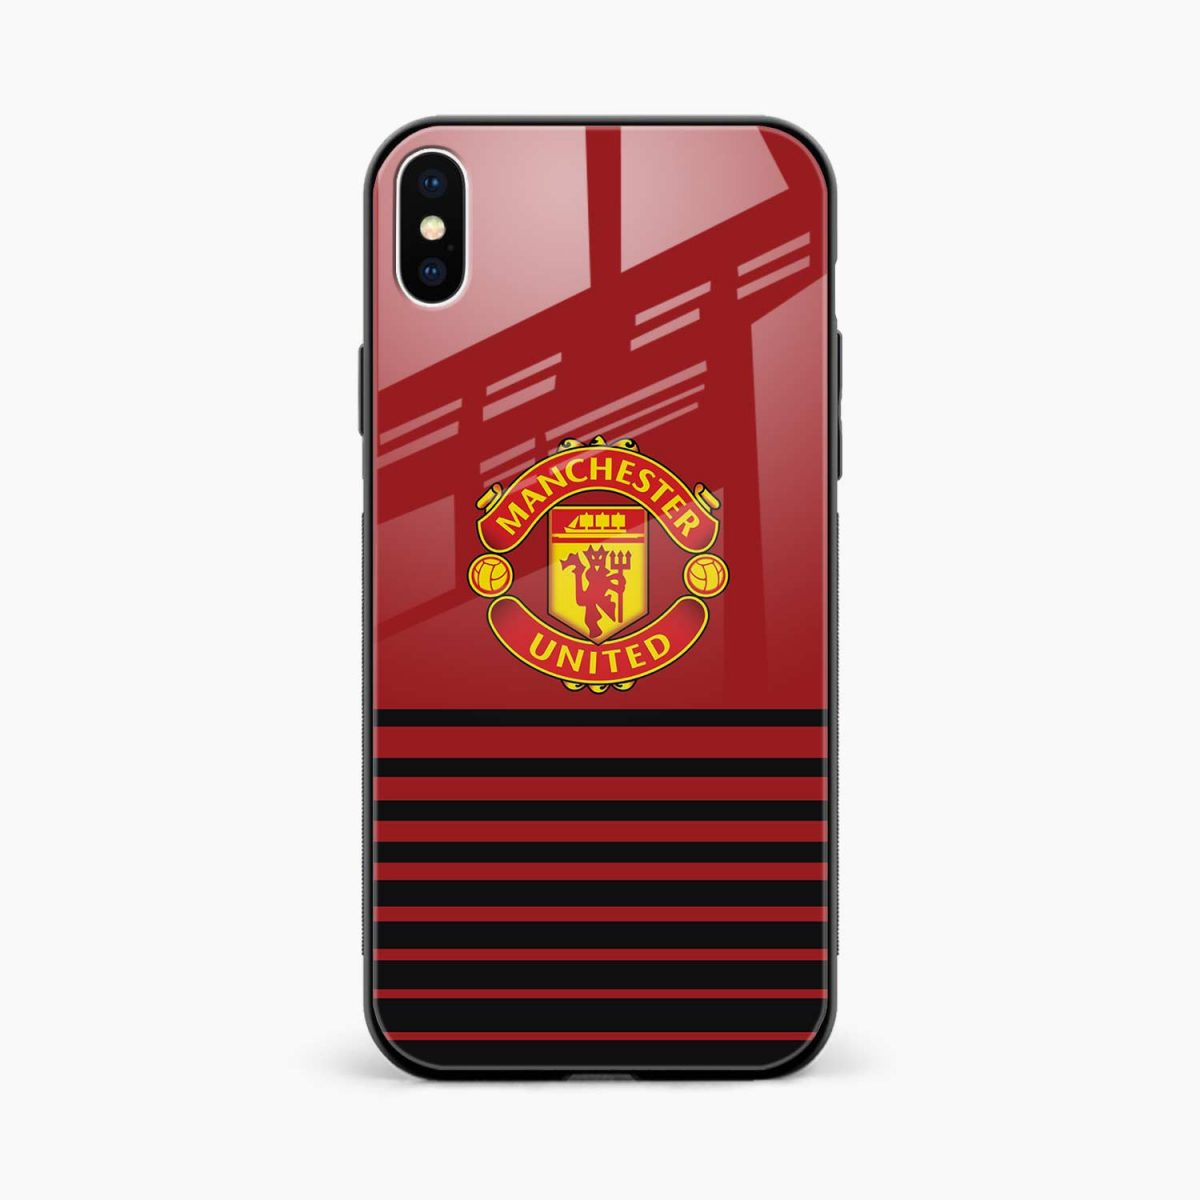 manchester united front view apple iphone x xs max back cover